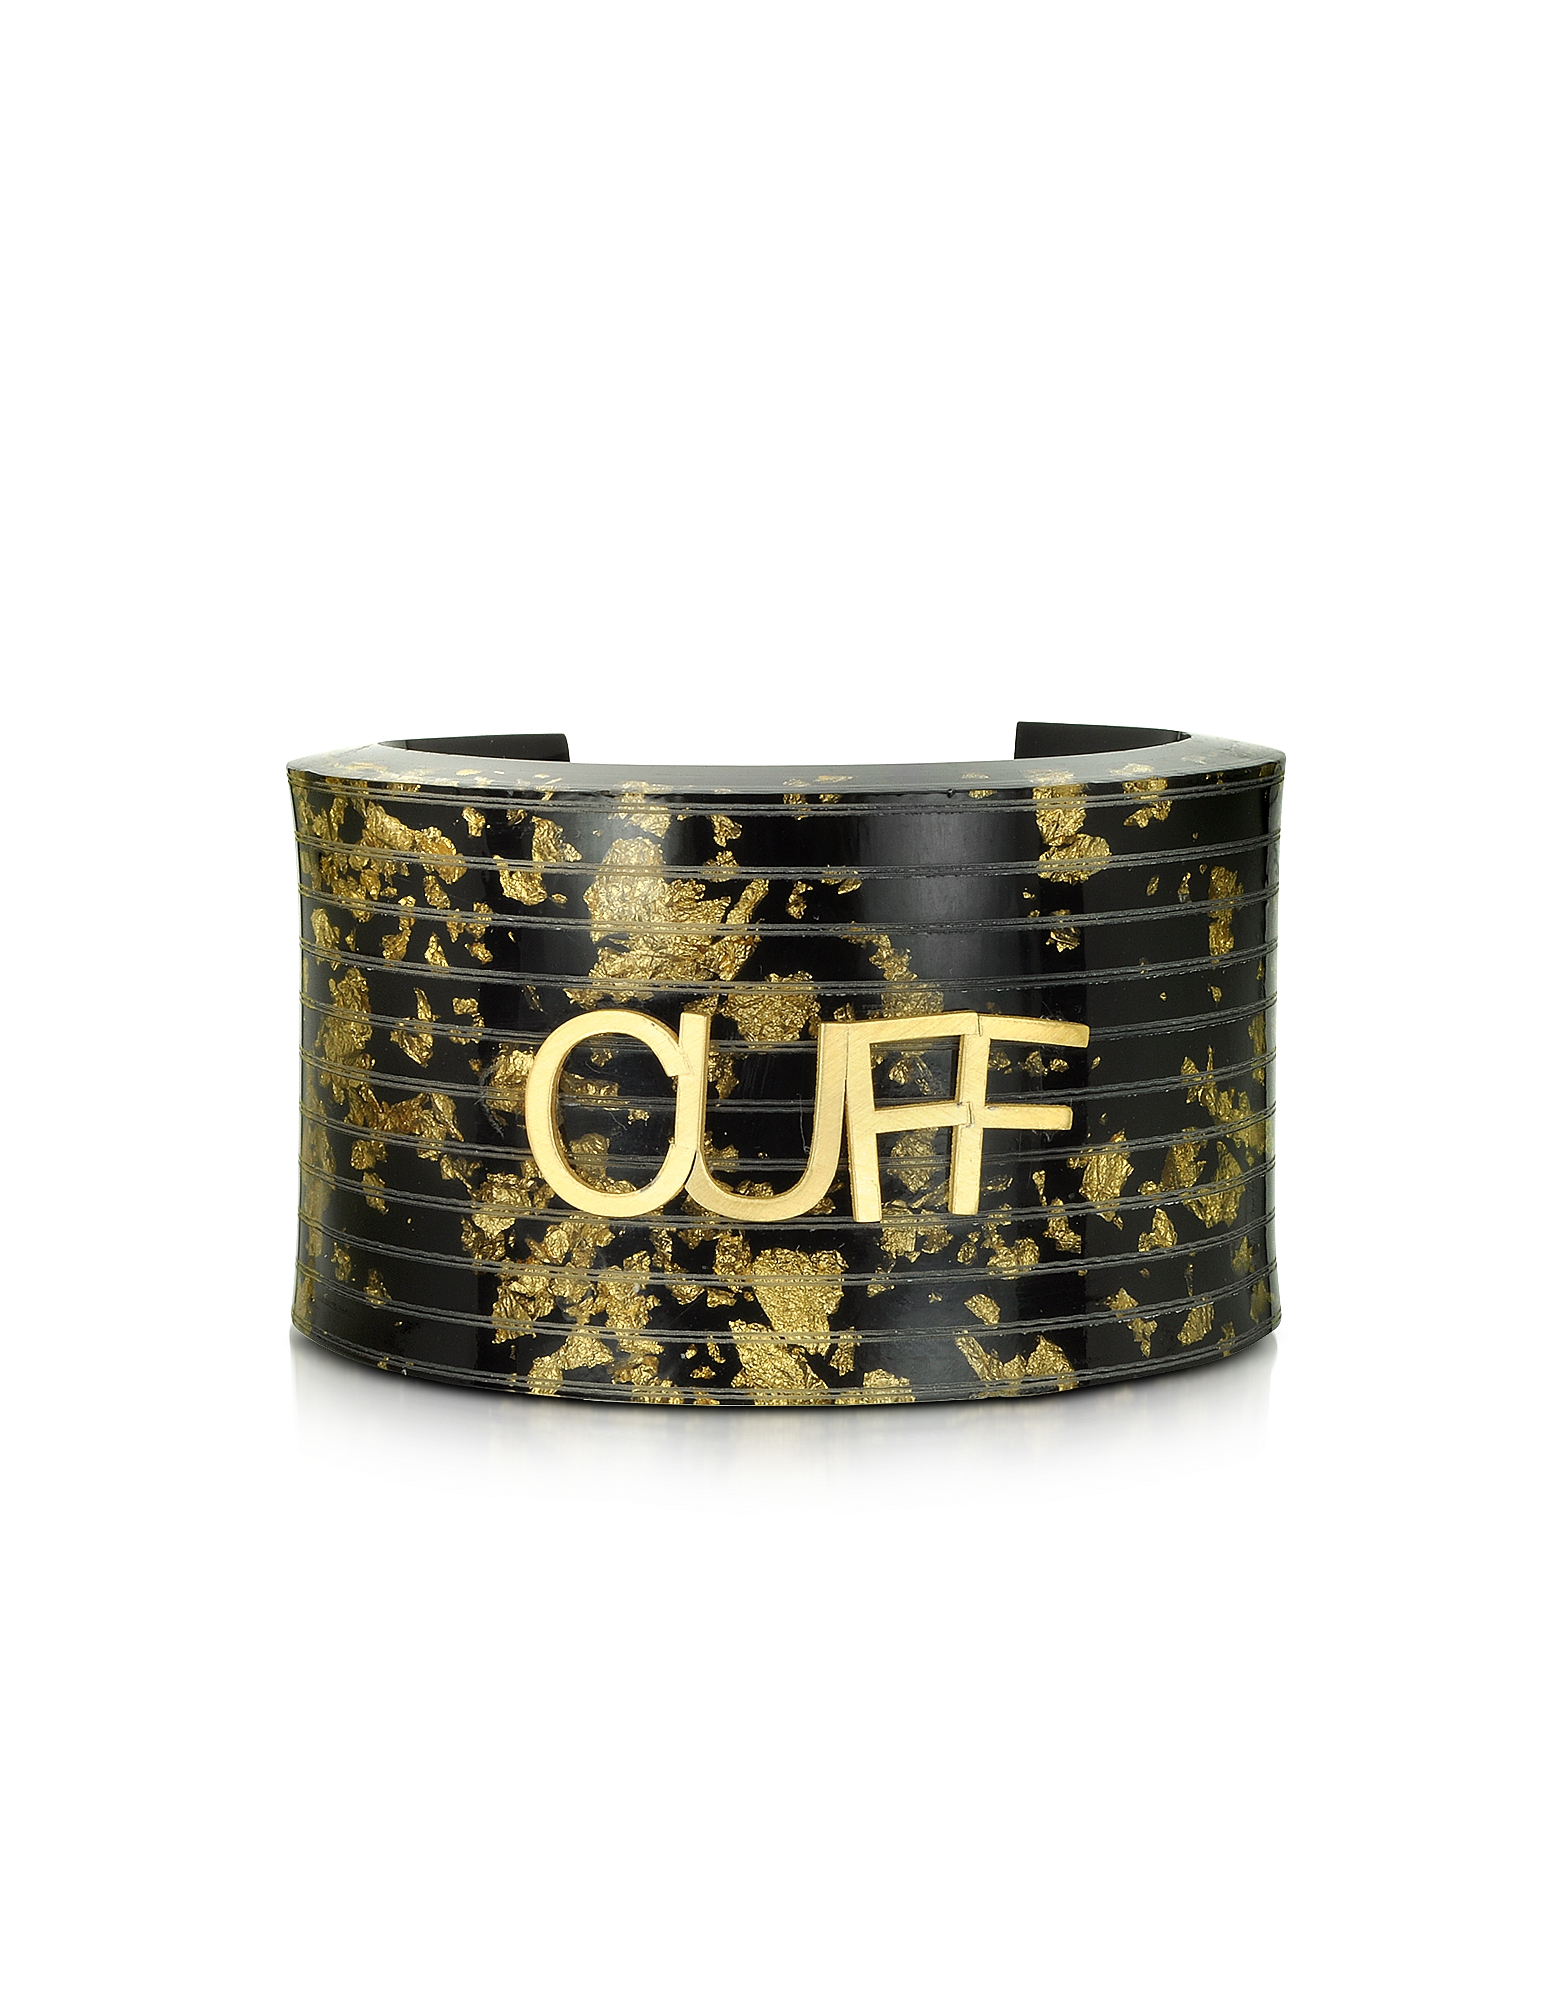 MM6 Maison Martin Margiela Bracelets, Black & Gold Resin Cuff